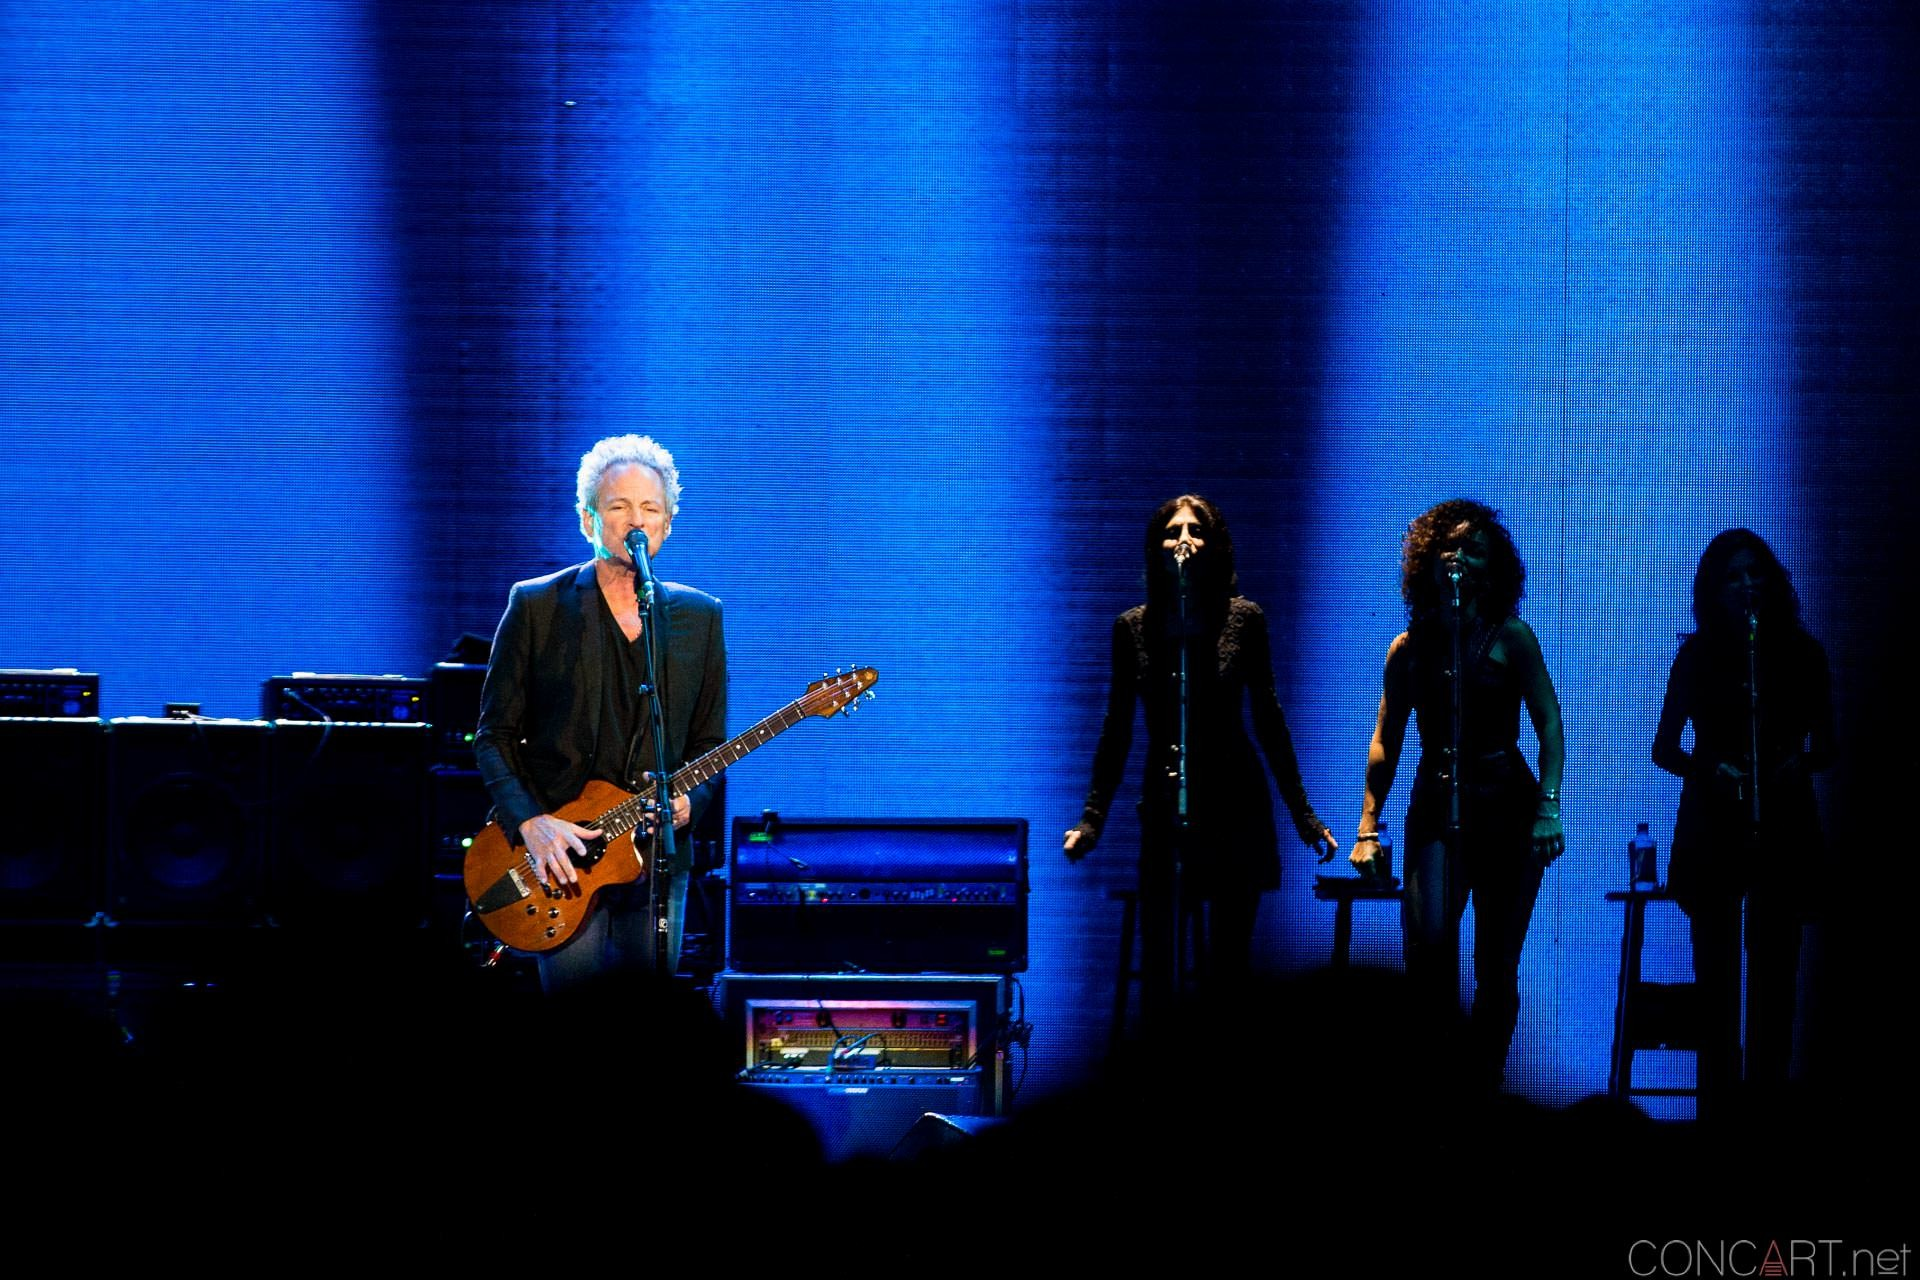 012-fleetwood-mac-live-indianapolis-bankers-life-fieldhouse-2014